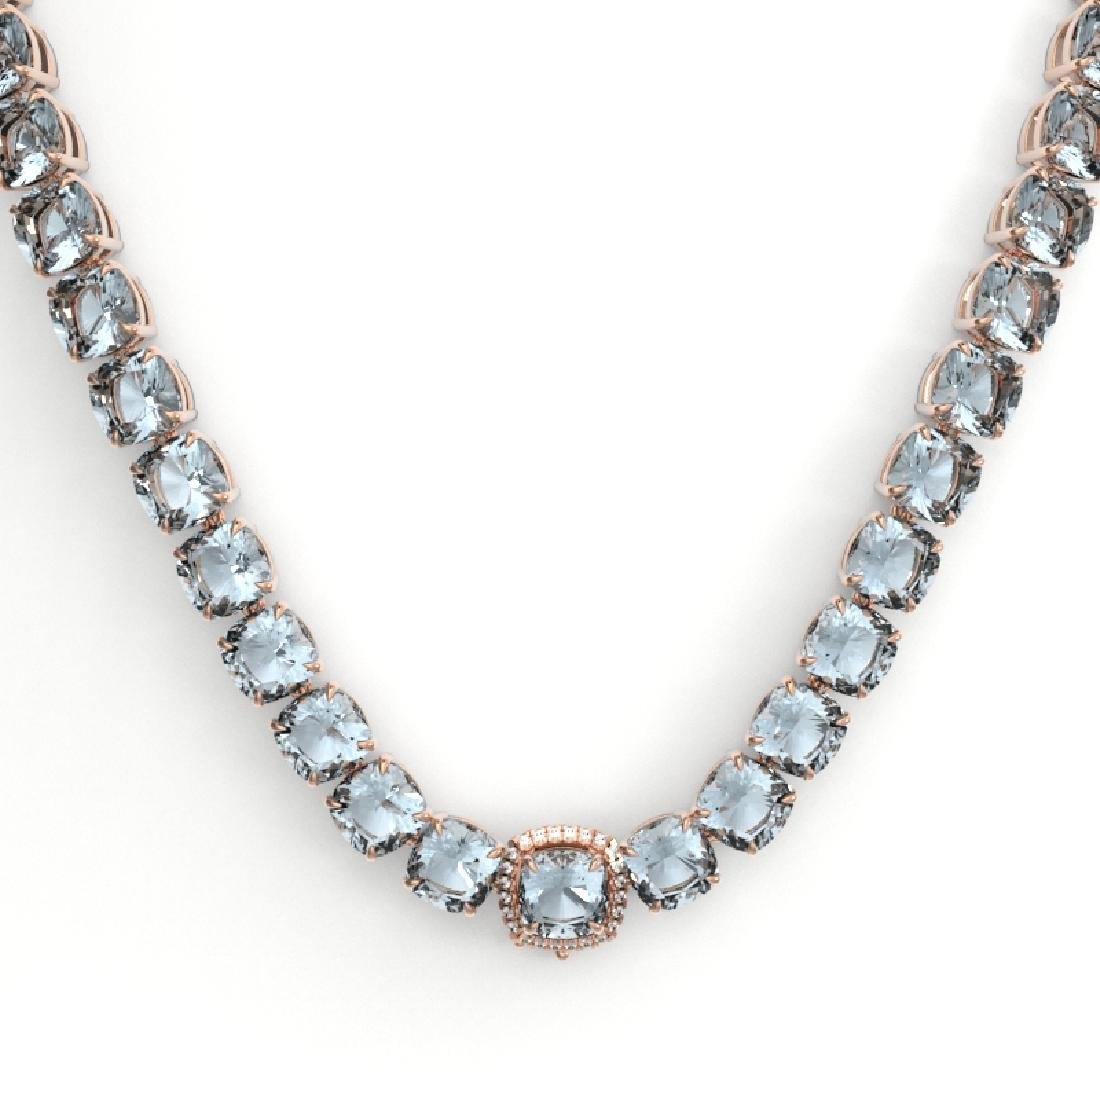 87 CTW Aquamarine & VS/SI Diamond Necklace 14K Rose - 2